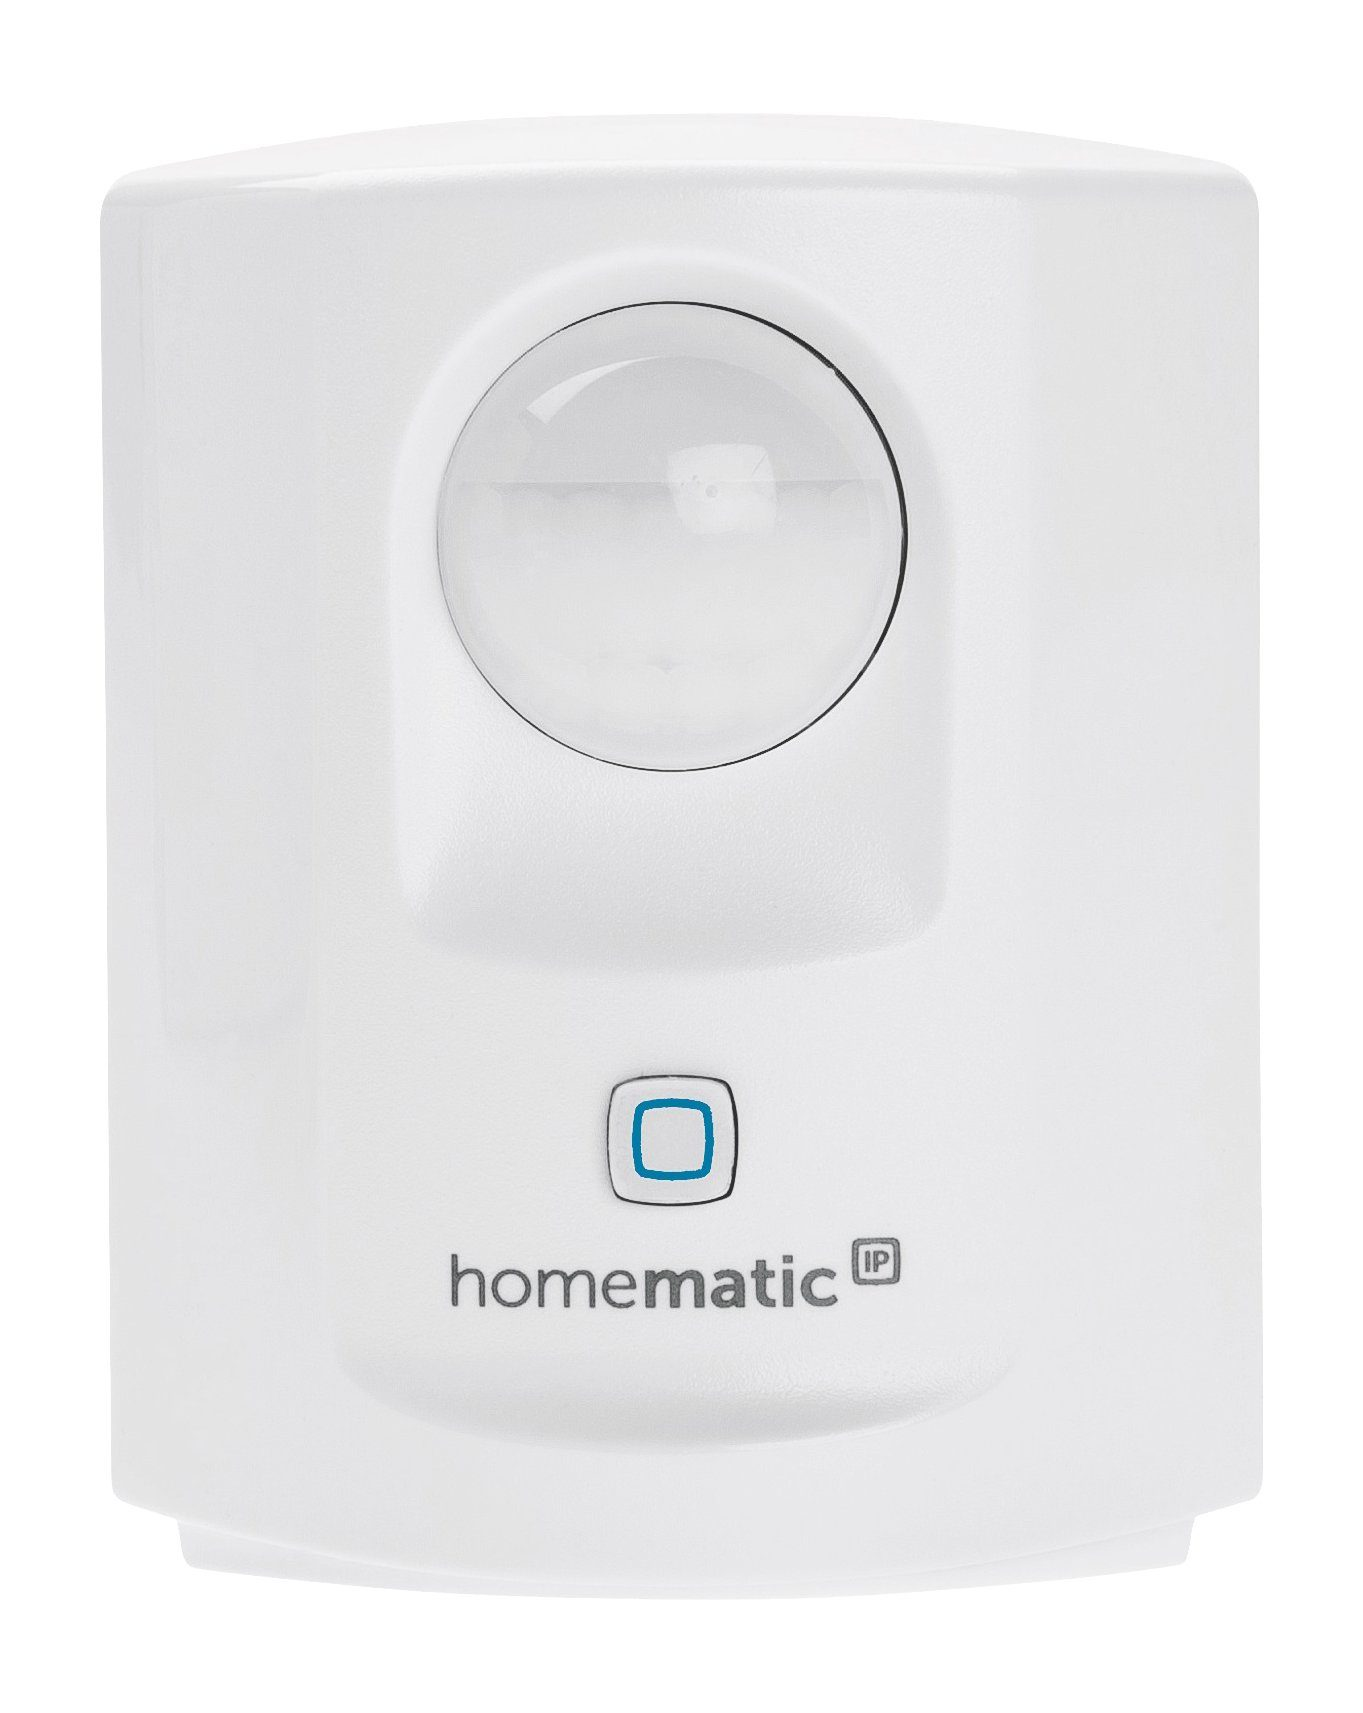 Homematic IP Smart Home - Sicherheit & Licht »Bewegungsmelder / Dämmerungssensor - HmIP-SMI«